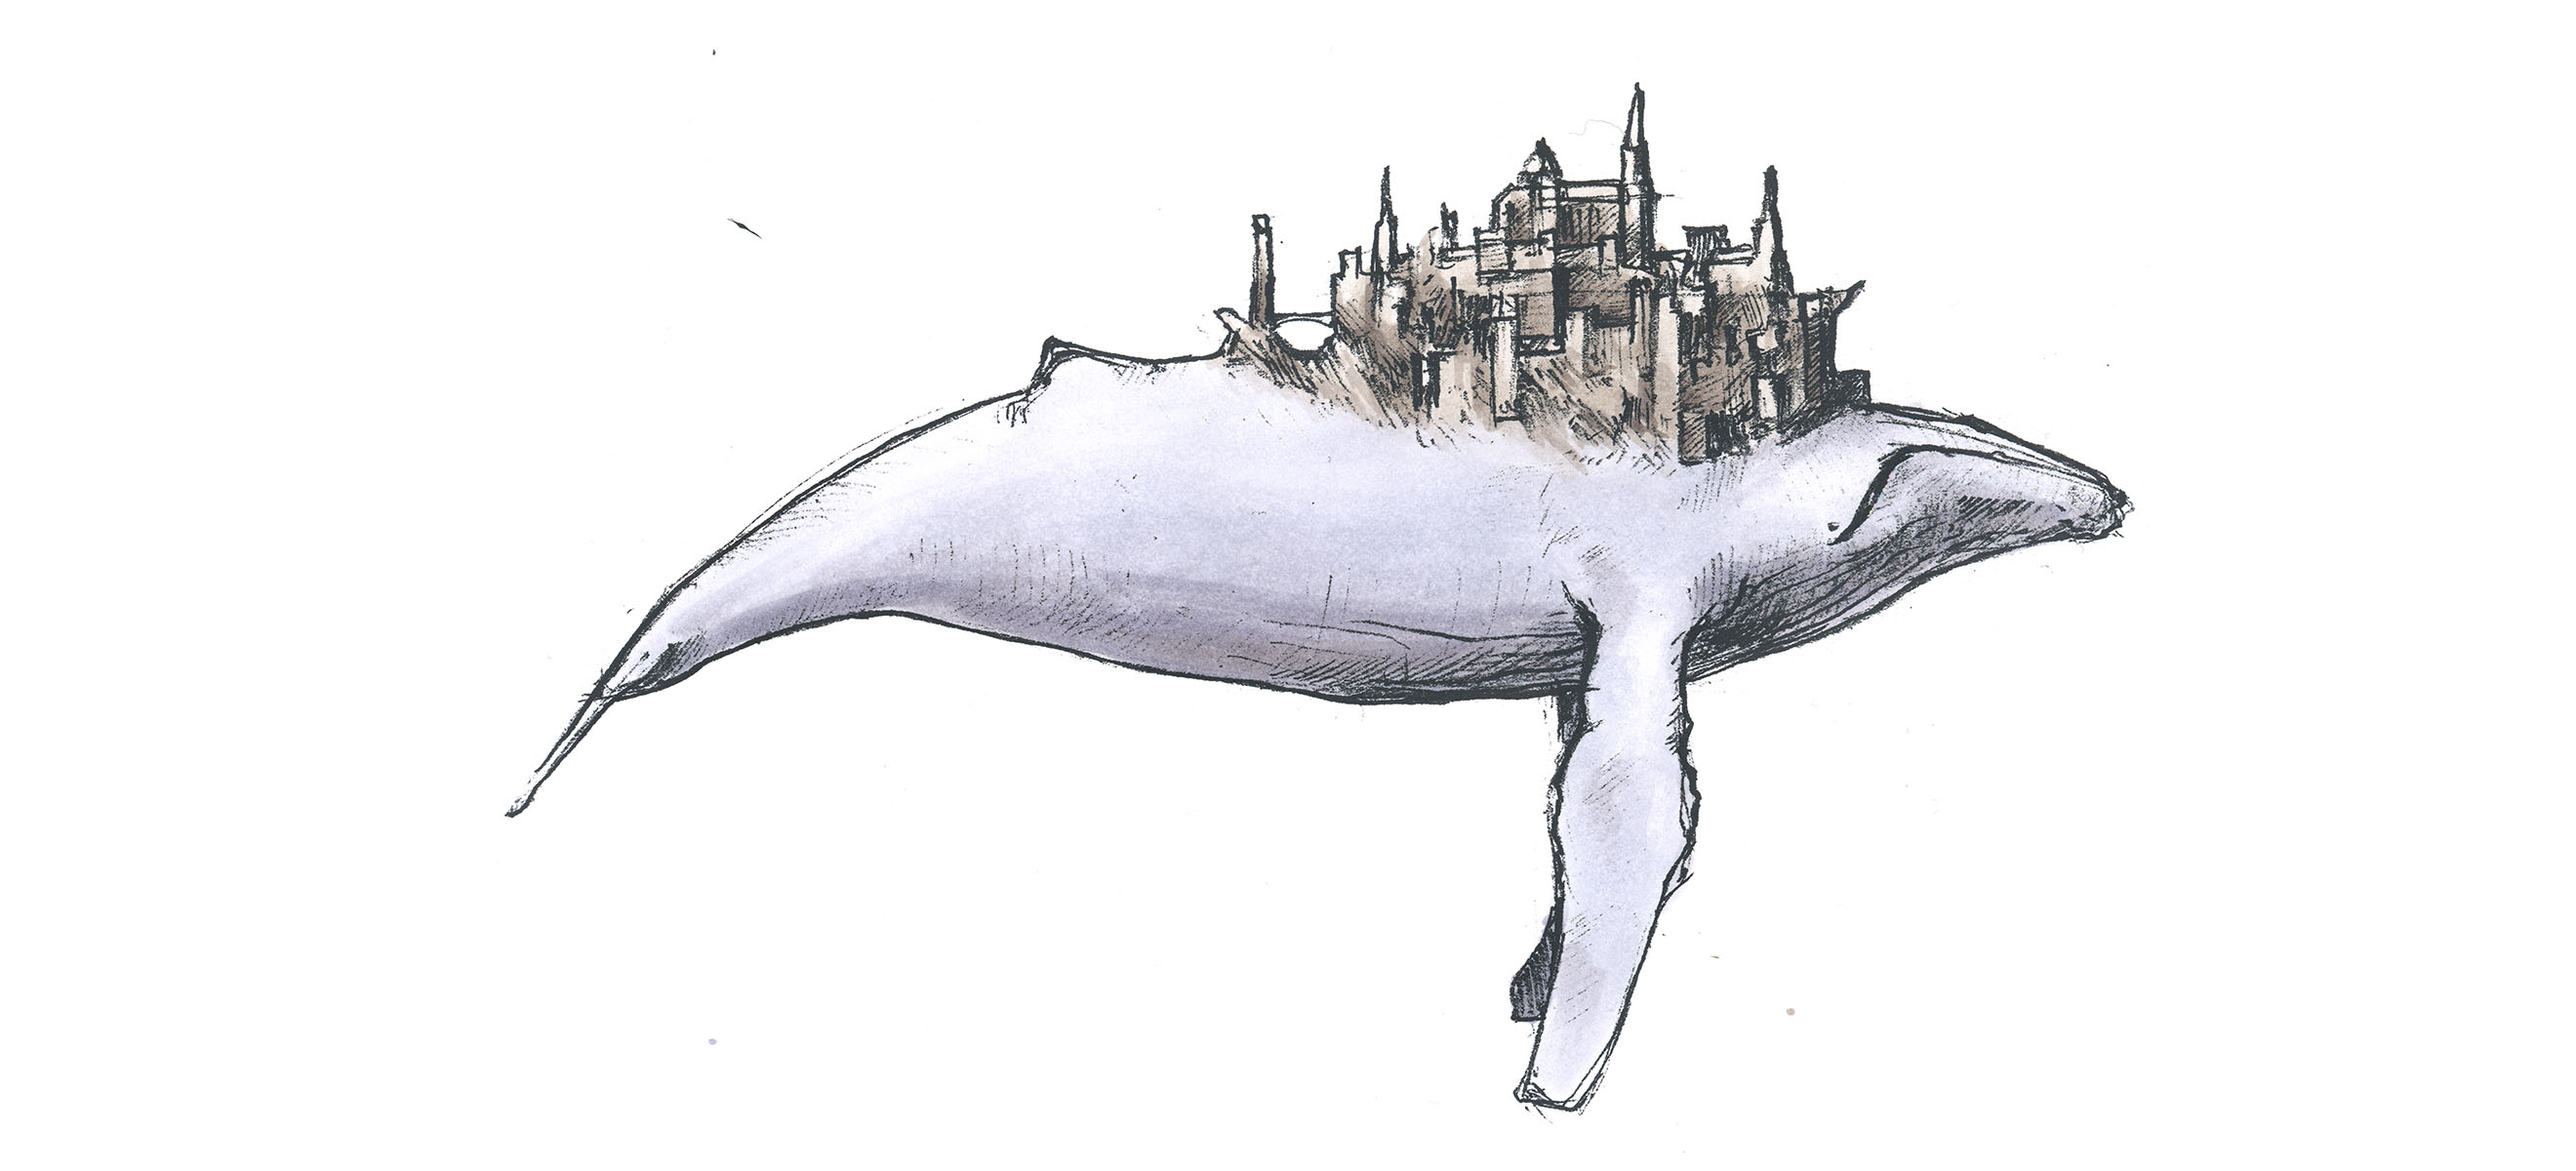 Drawing of whale with medieval city on its back